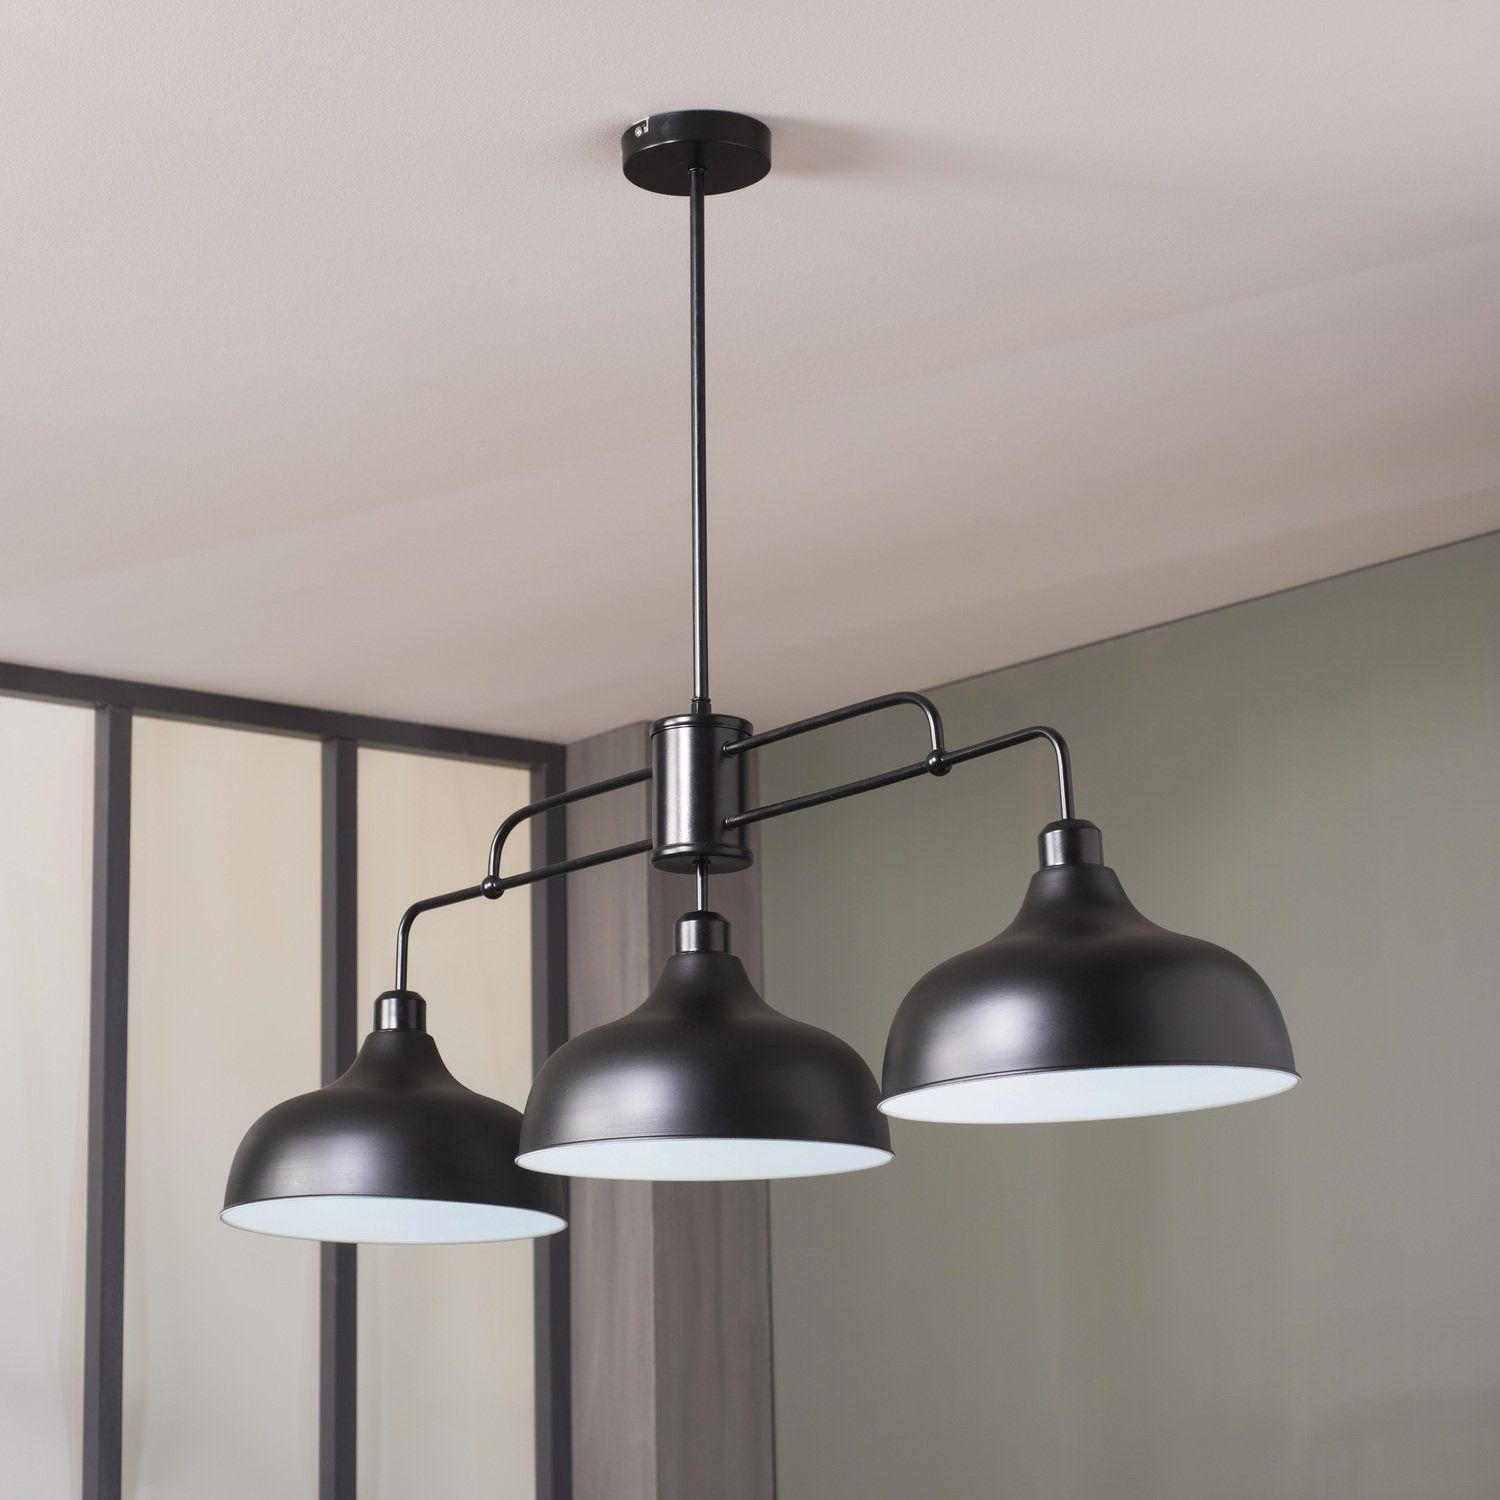 Luminaire Lustre Design Of Cette Suspension Design Adopte Un Style R Solument